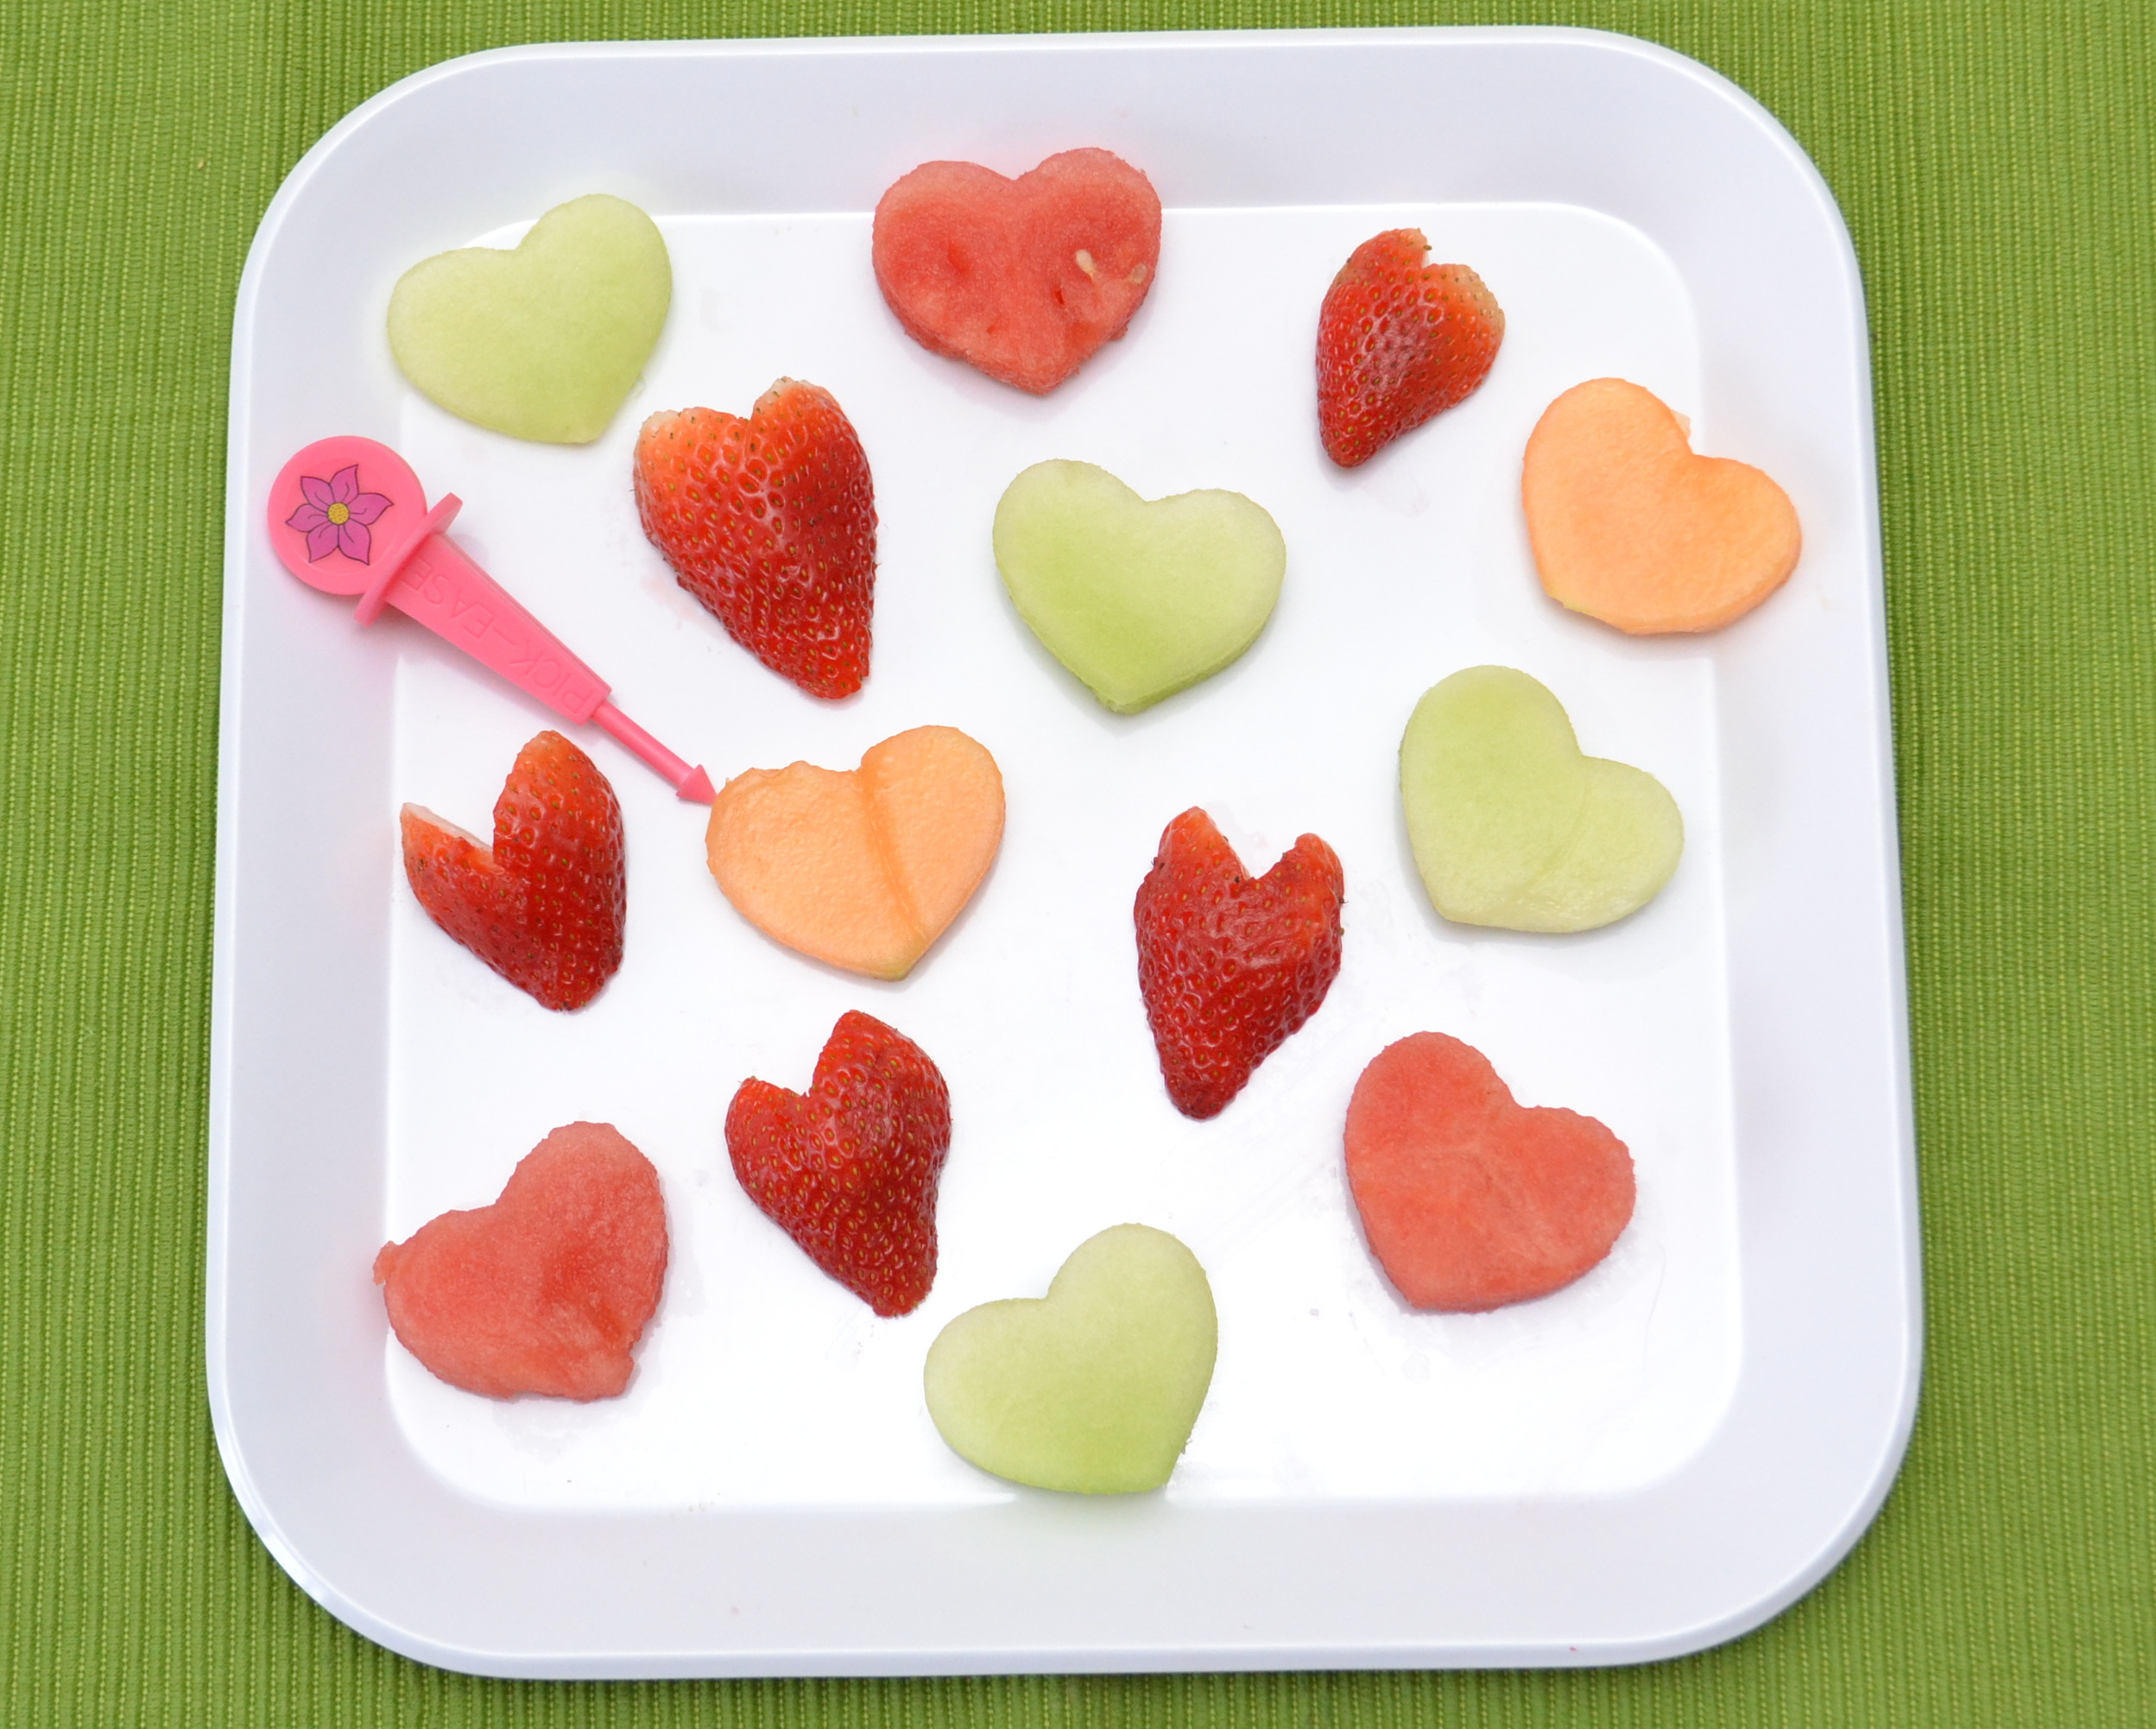 Valentines Day Snack Ideas - Valentines Fruit Salad